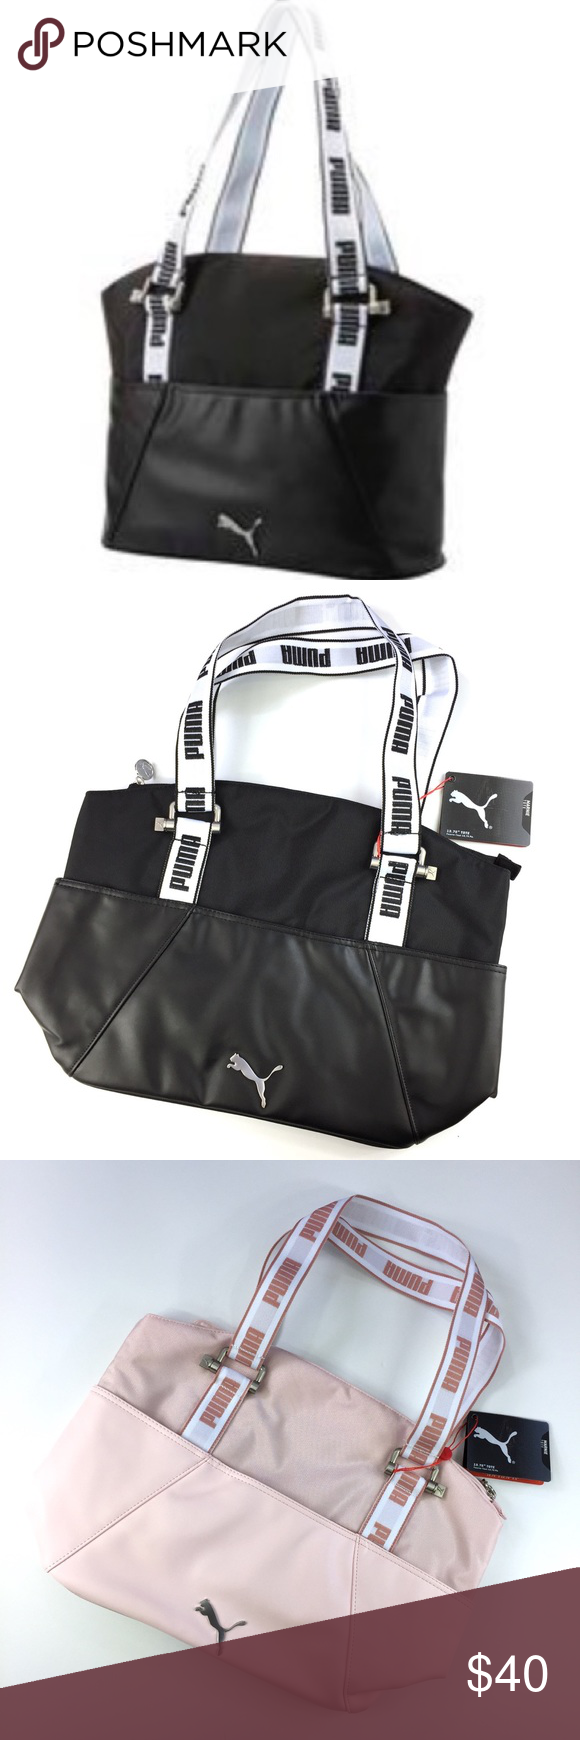 Puma Marnie Tote in Black or Pink New With Tags. This listing is for one Marnie  Tote in black or pink by Puma. Smaller Tote  duffle bag that s perfect for  a ... 193ecbc718278